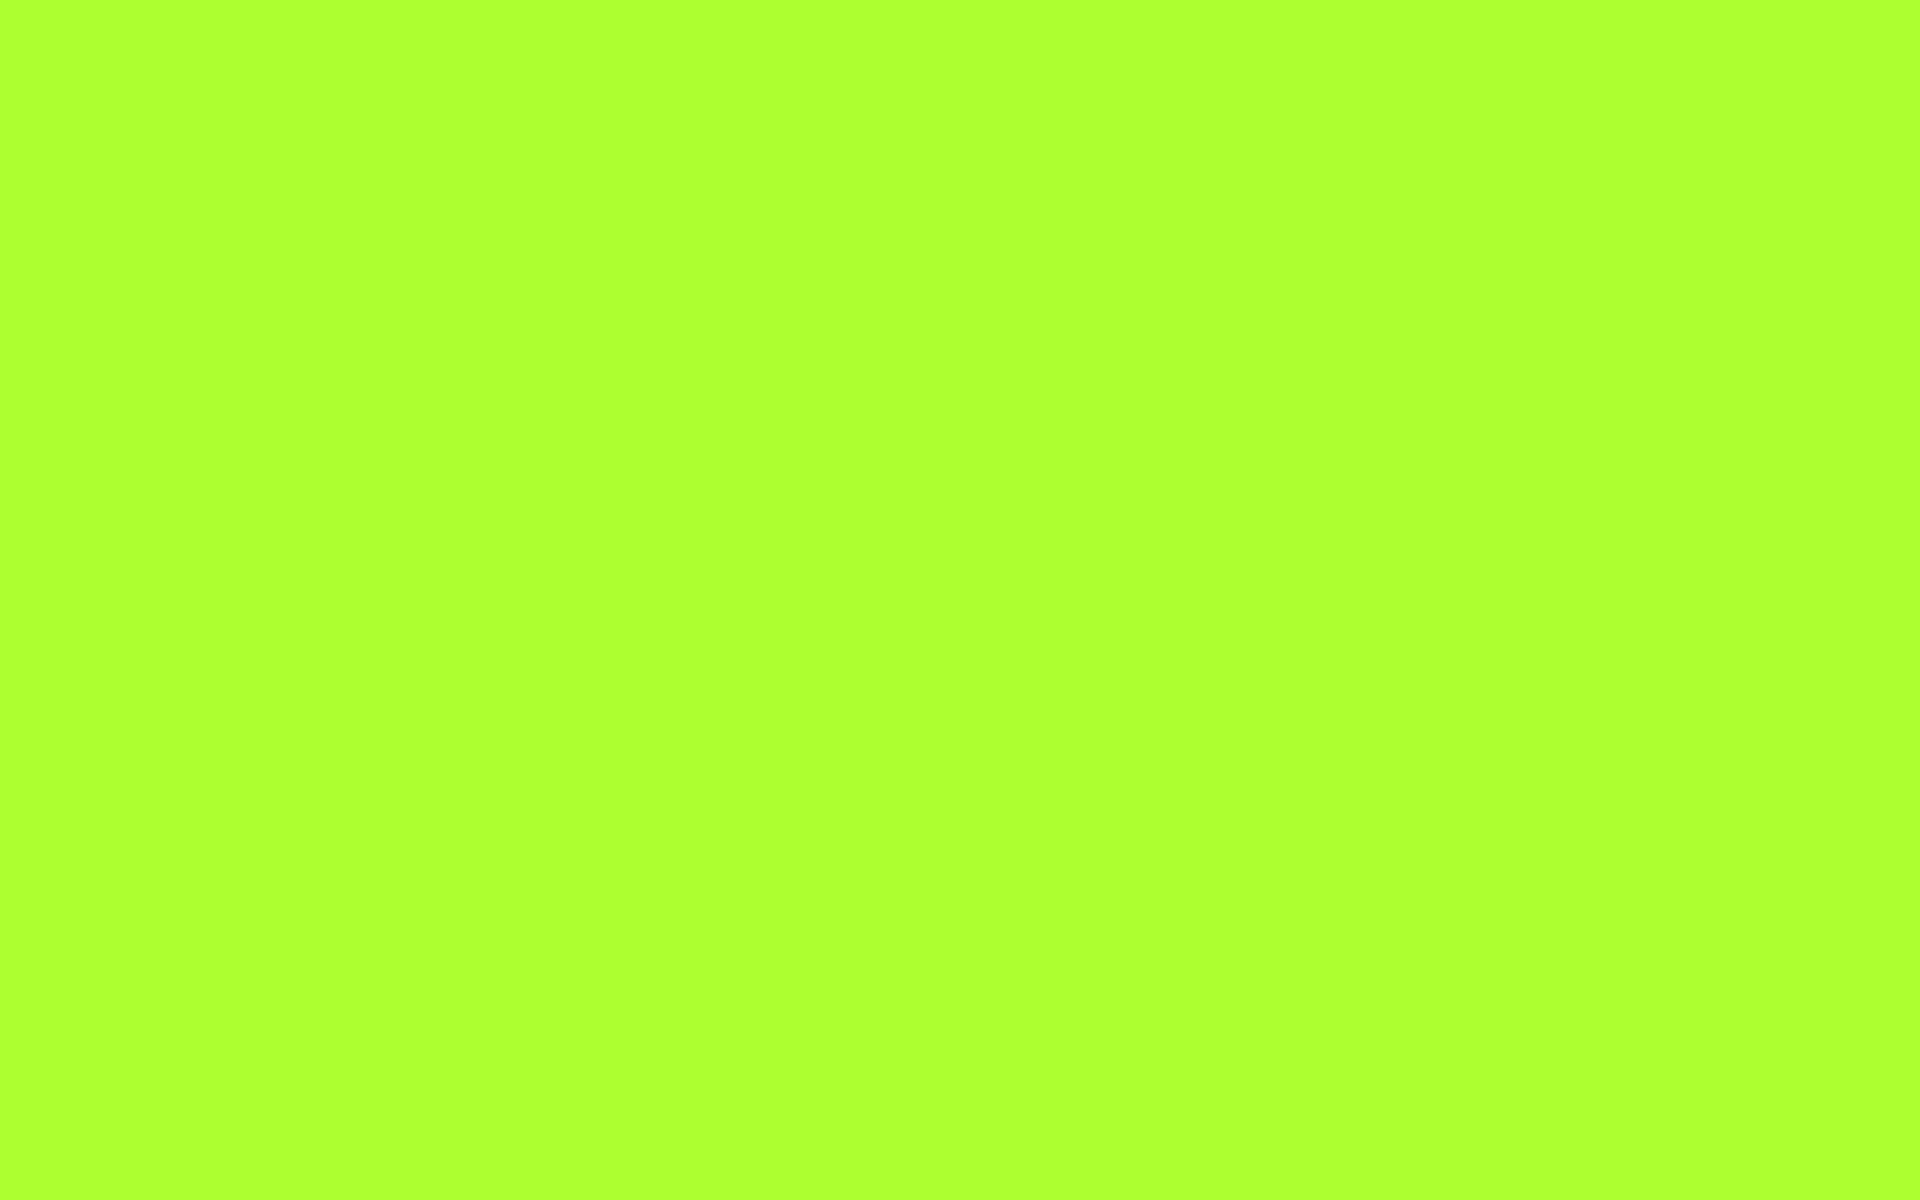 1920x1200 Green-yellow Solid Color Background